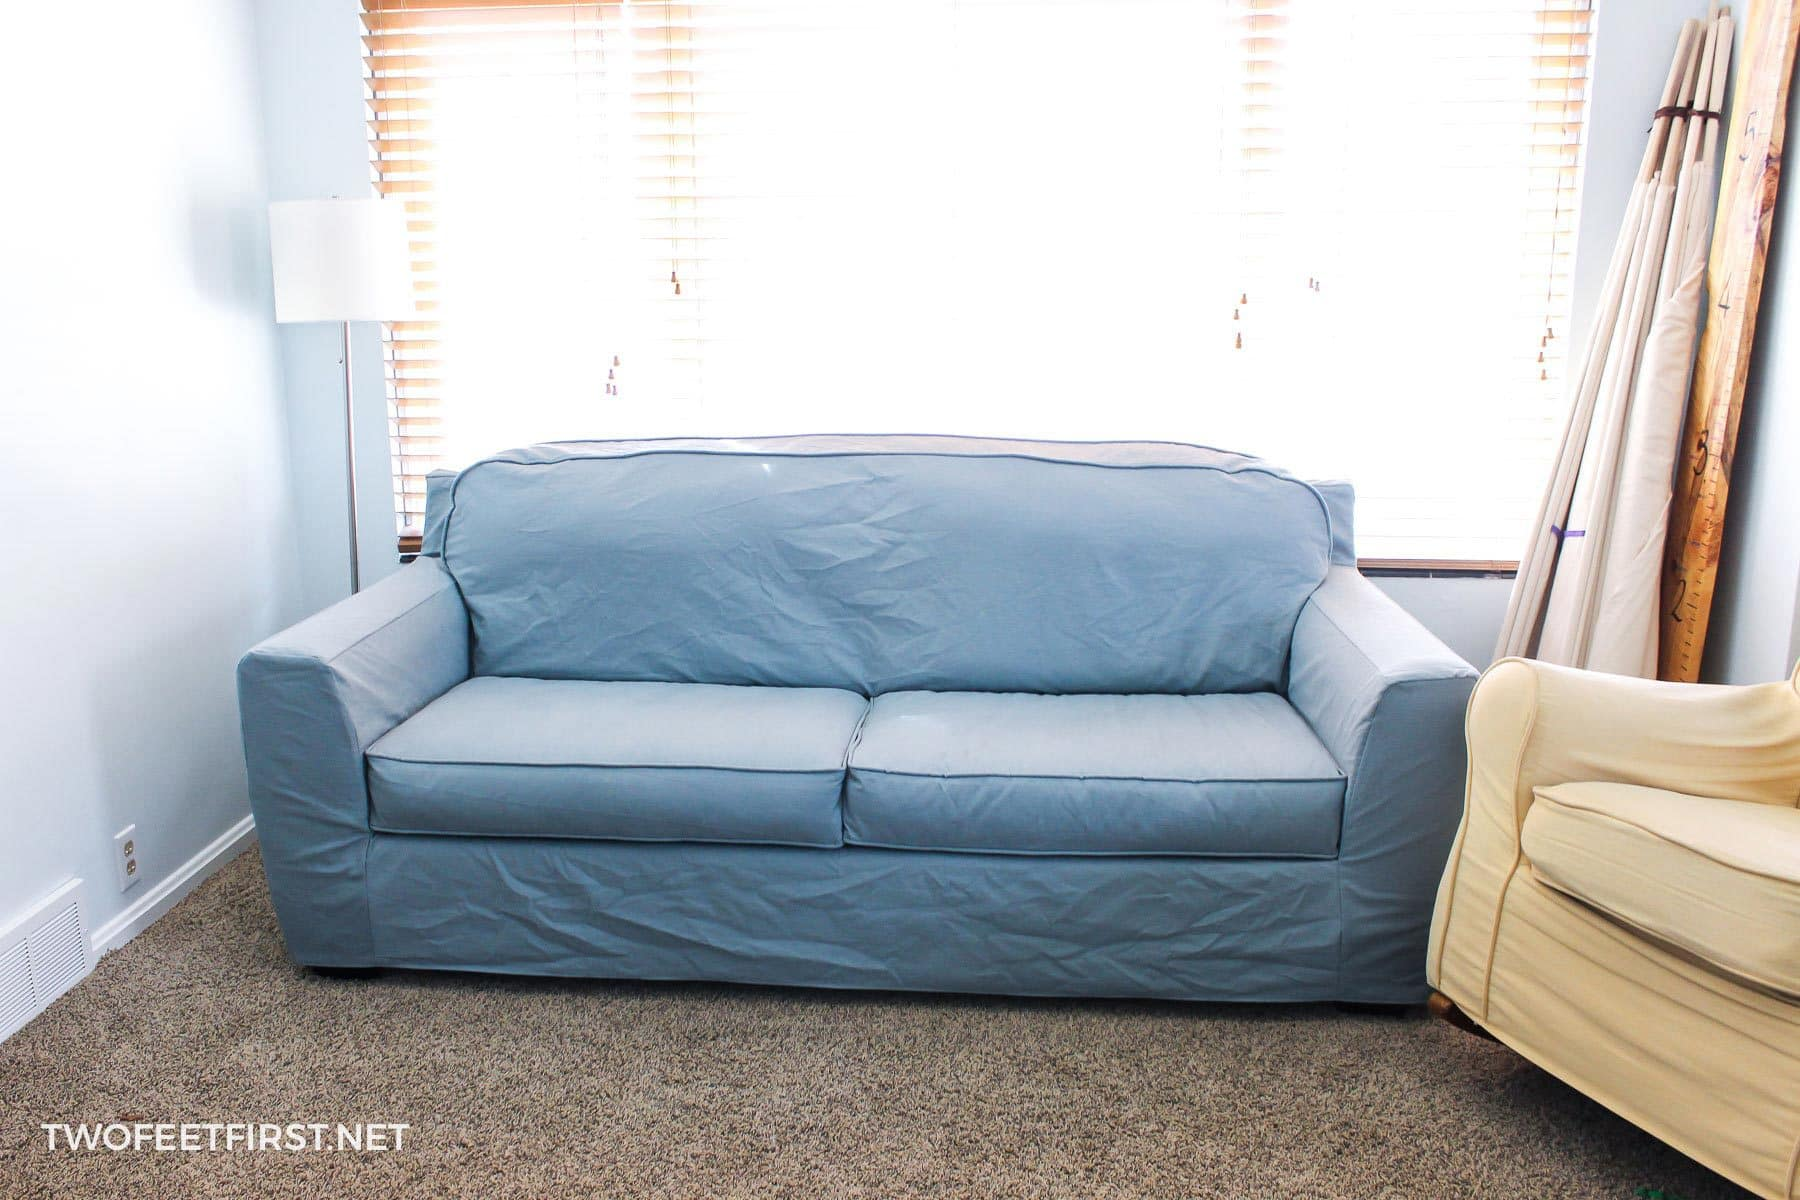 Create A Slipcover For A Sofa